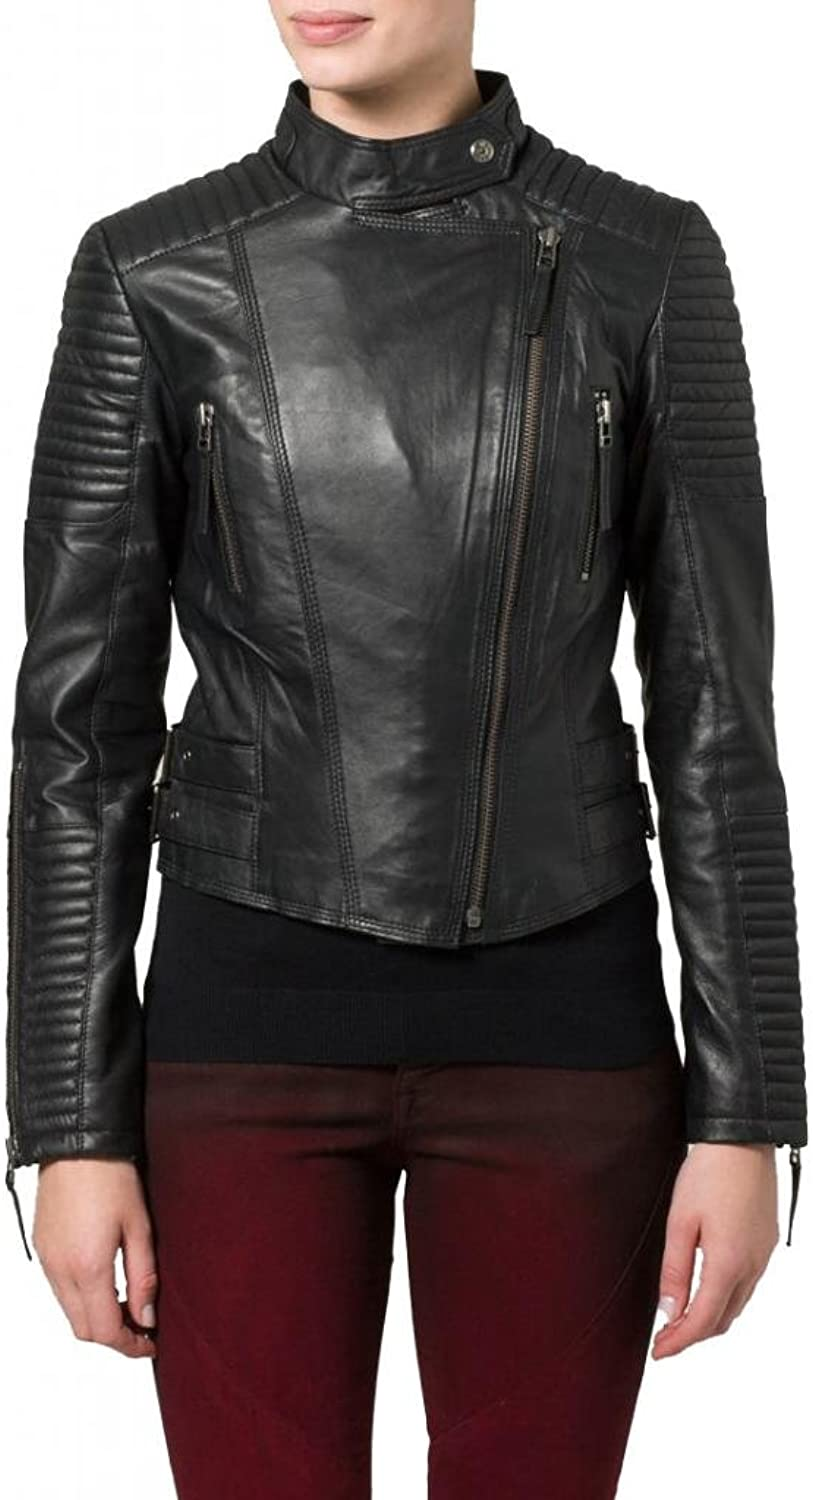 Leather Women's Lambskin Leather Bomber Biker Jacket W087